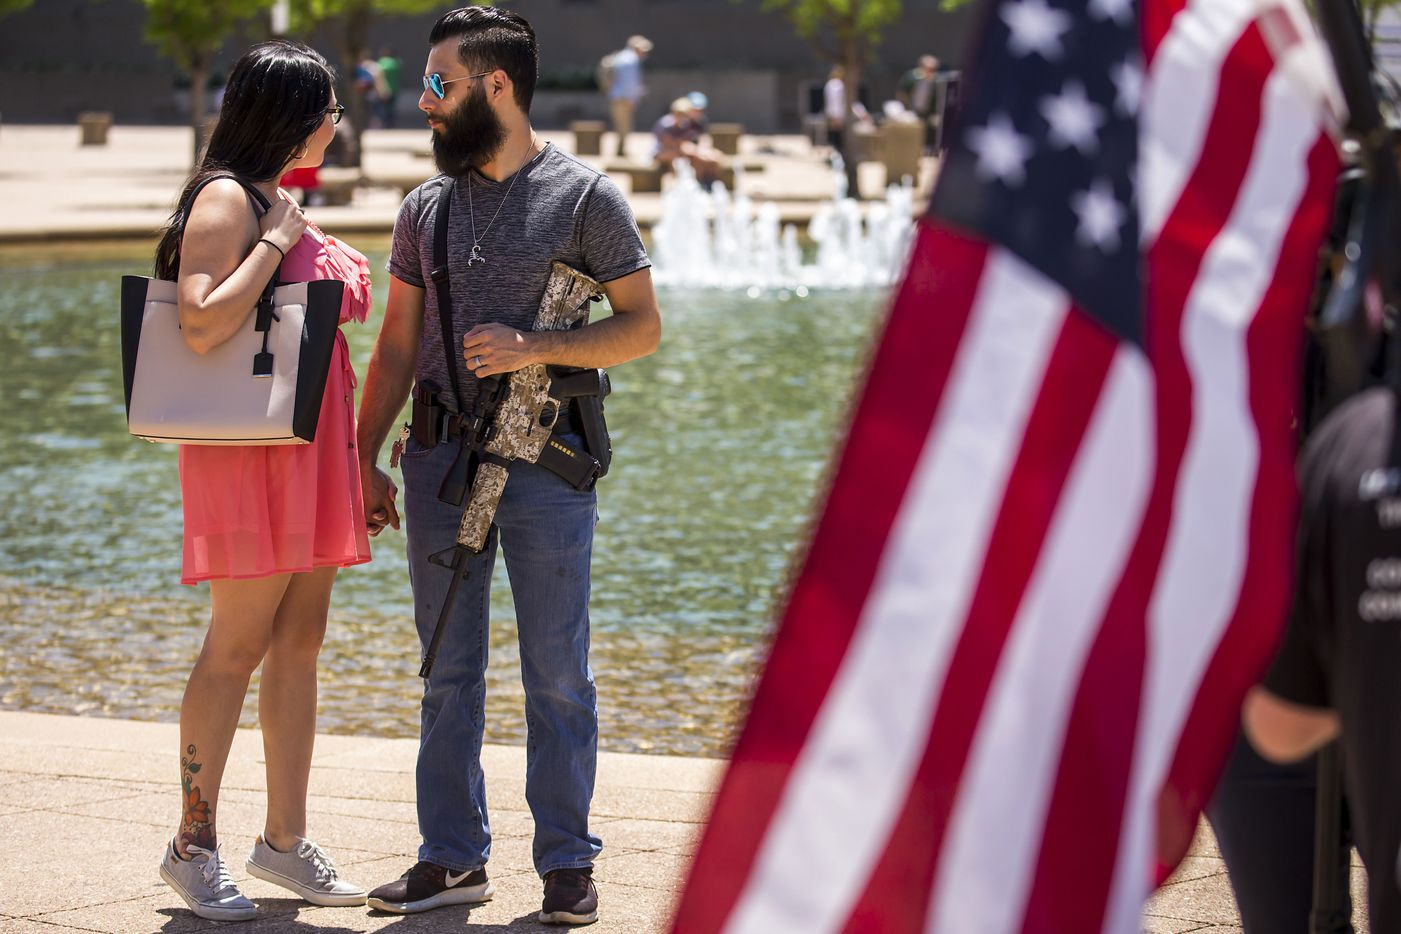 Jessica Scogin holds hands with her husband Ryan Scogin as gun rights advocates demonstrate outside Dallas City Hall at a rally organized by Open Carry Texas during the NRA Annual Meeting & Exhibits at the Kay Bailey Hutchison Convention Center on Saturday, May 5, 2018, in Dallas.